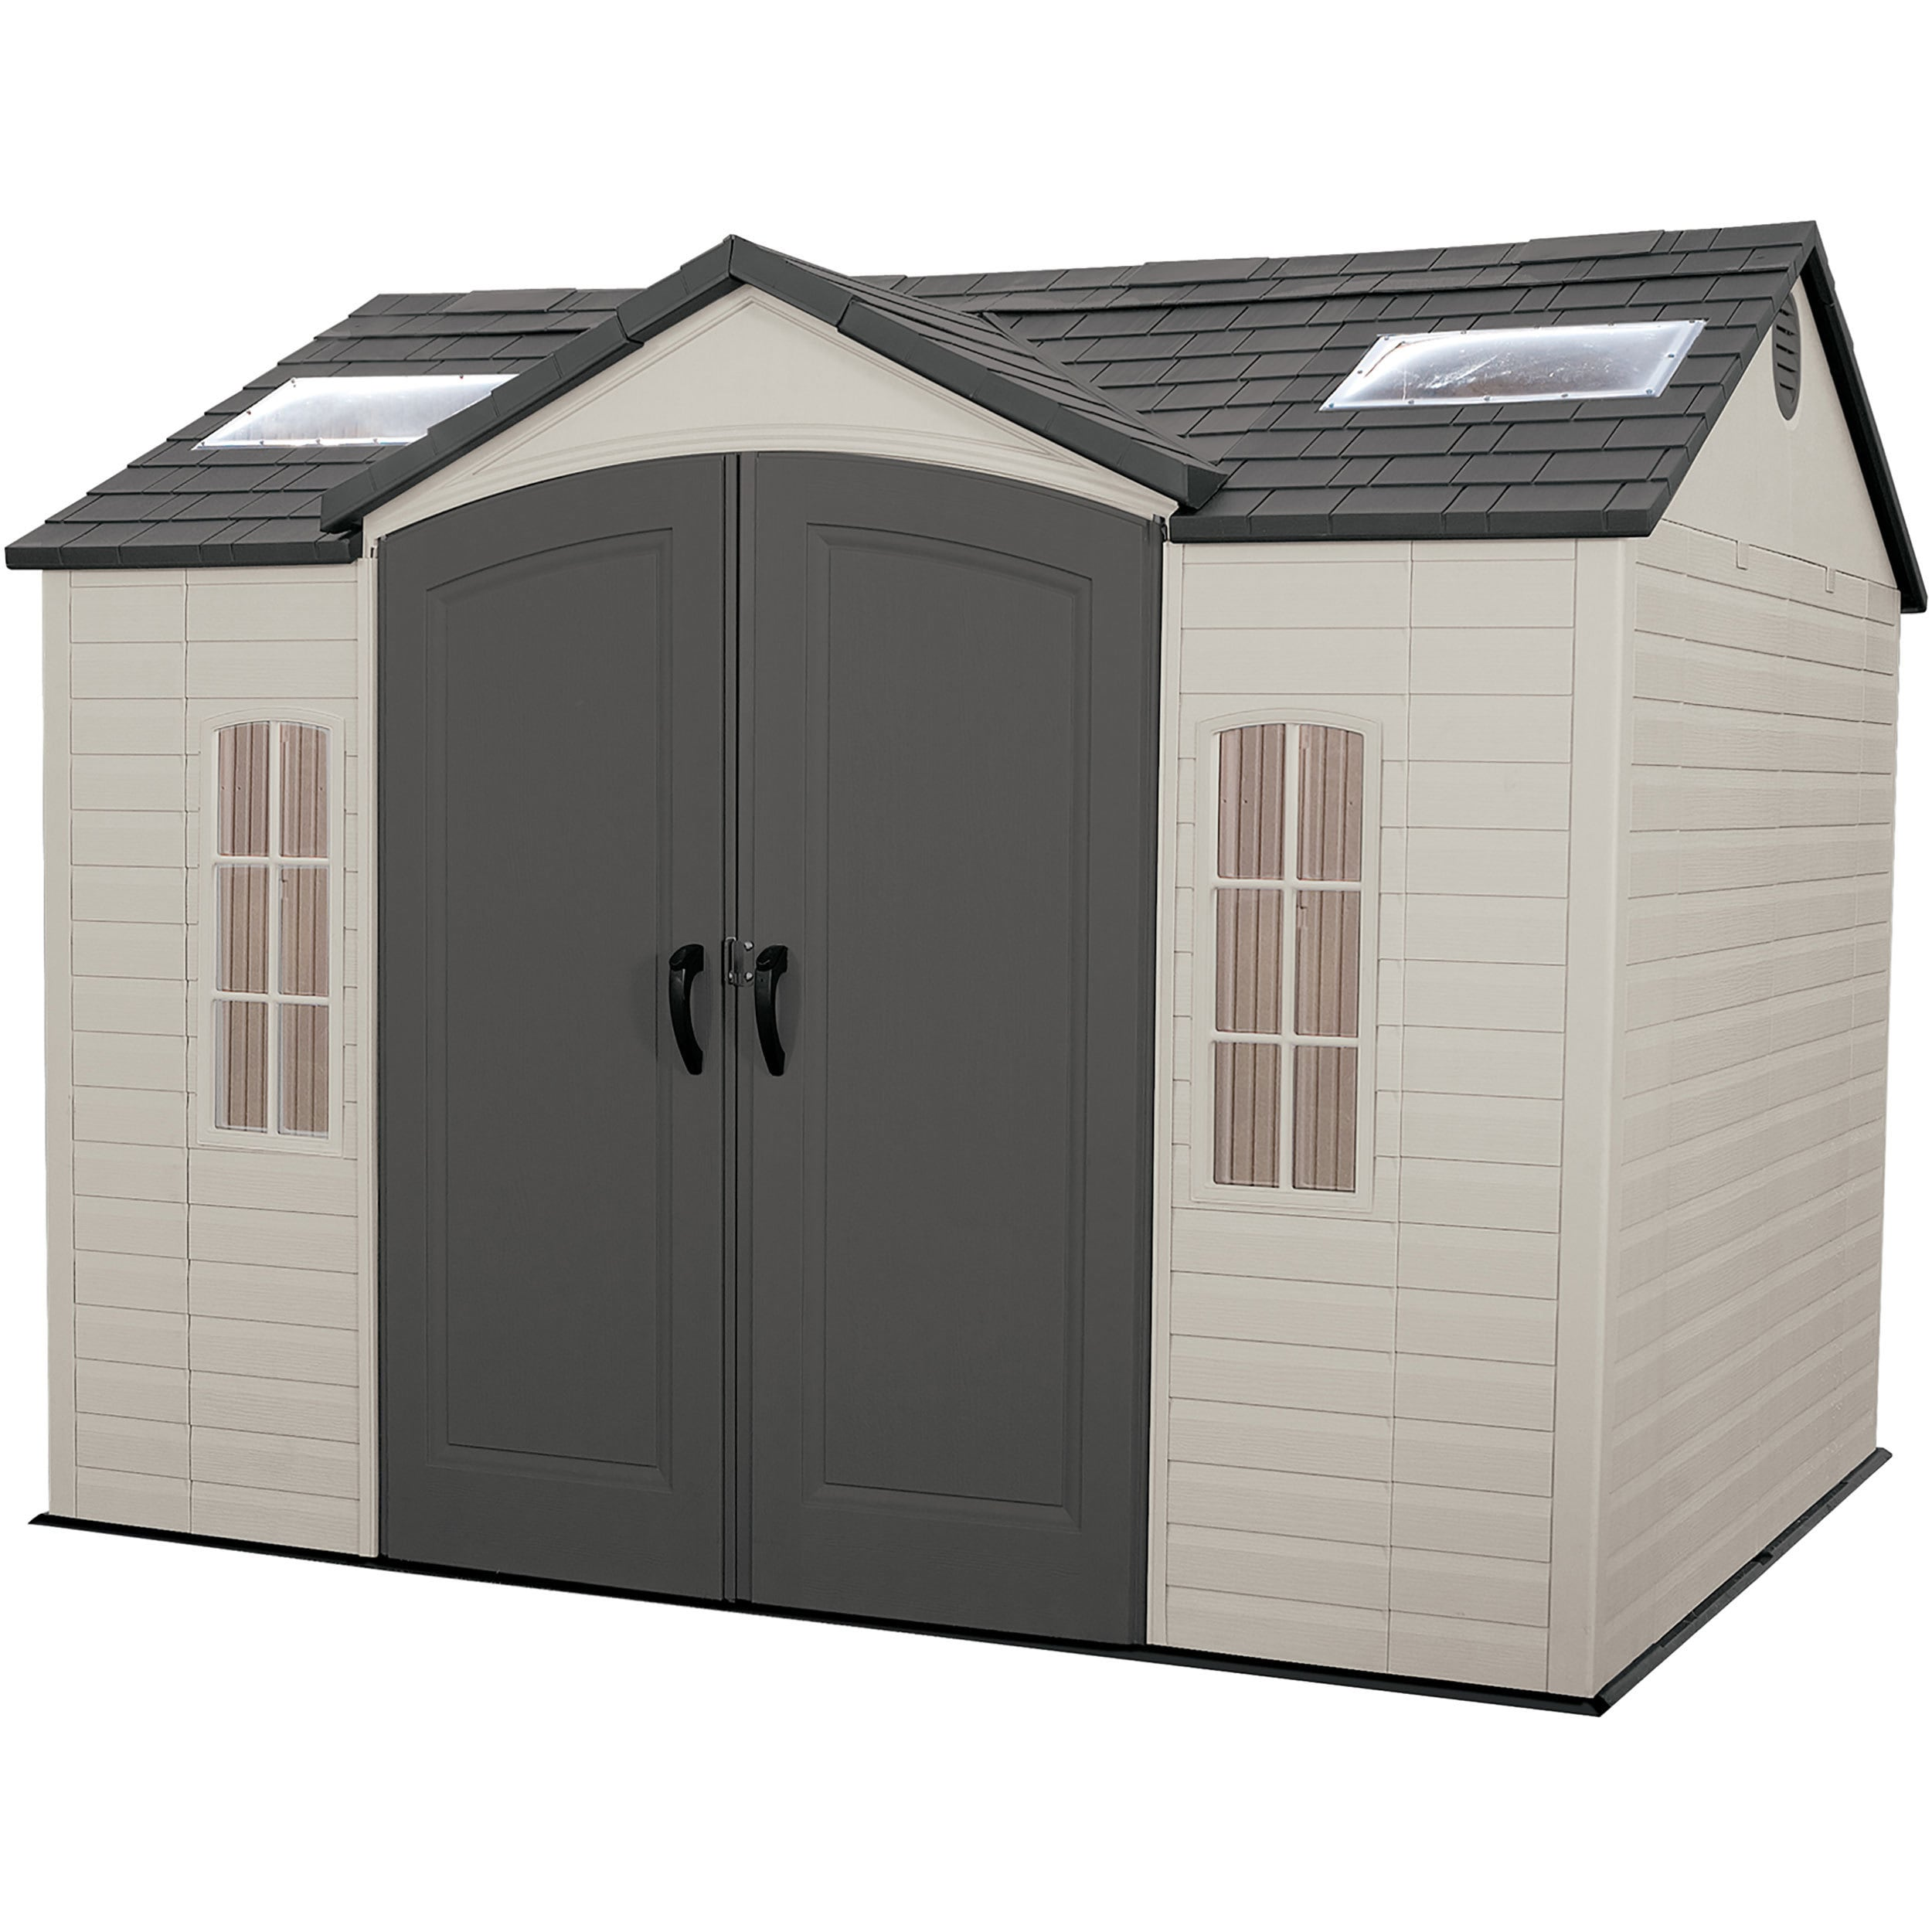 lifetime garden shed free shipping today overstock com 12597850